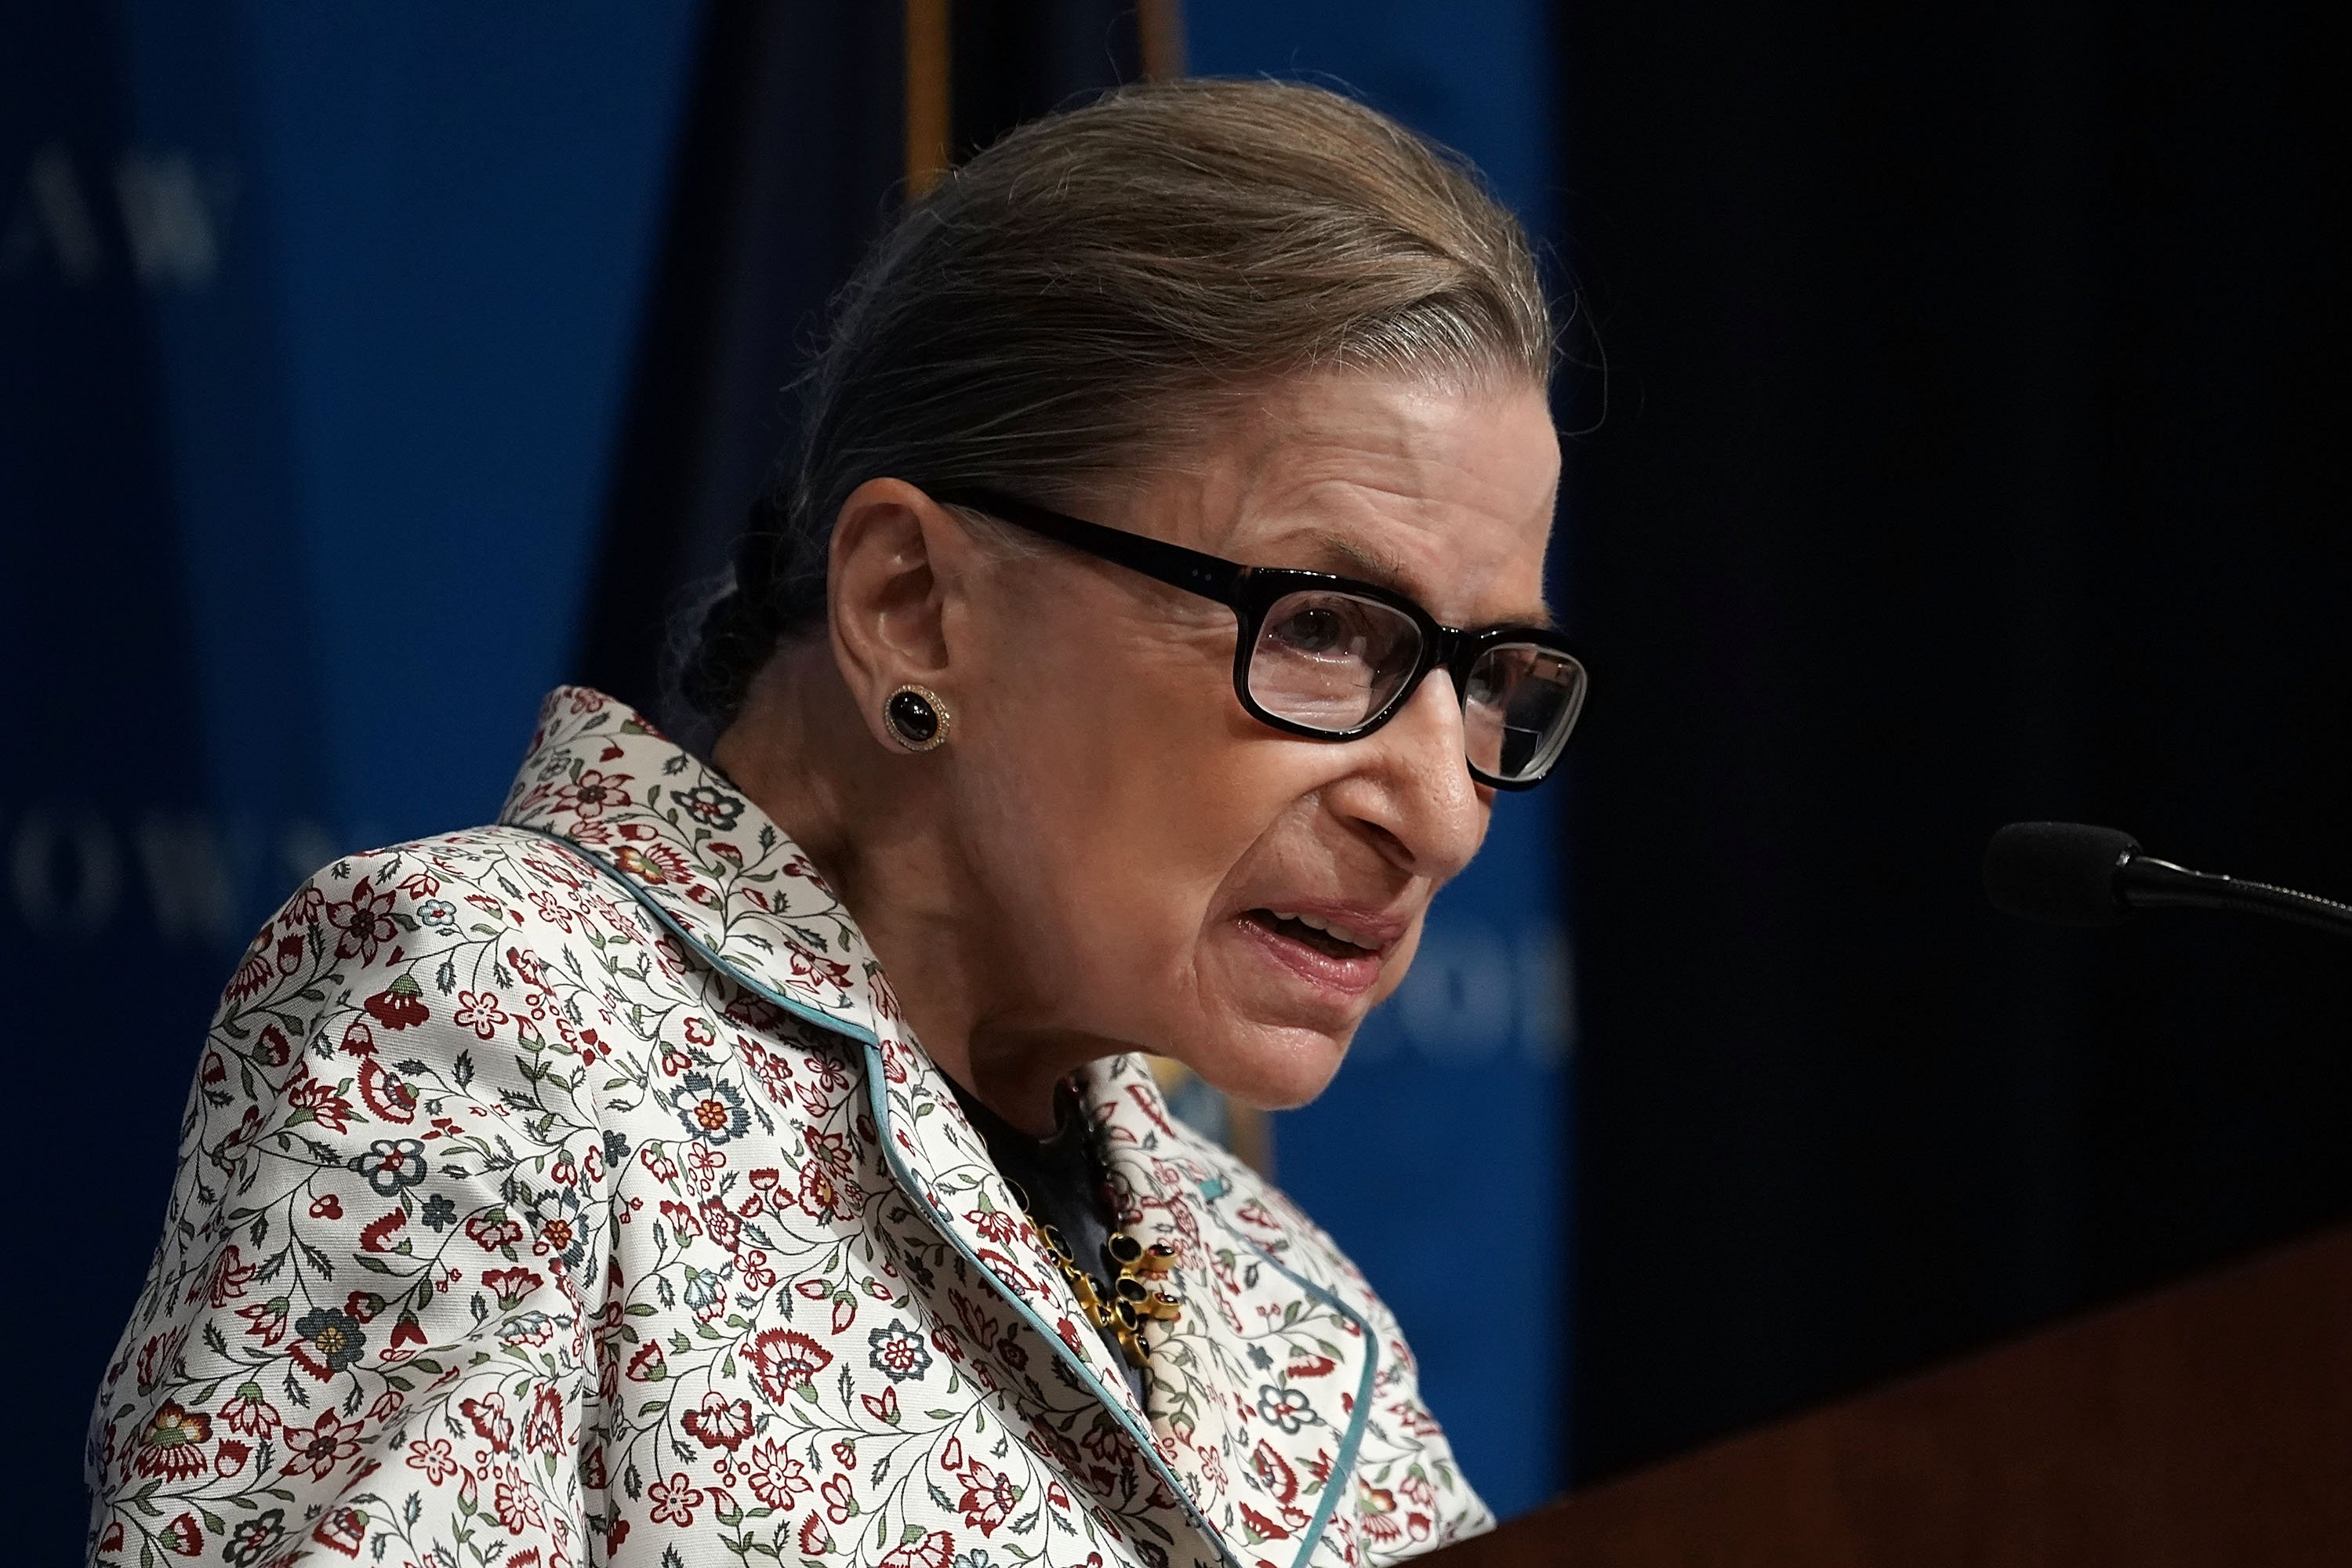 Supreme Court Justice Ruth Bader Ginsburg participates in a lecture on September 26, 2018, in Washington, DC. | Source: Getty Images.